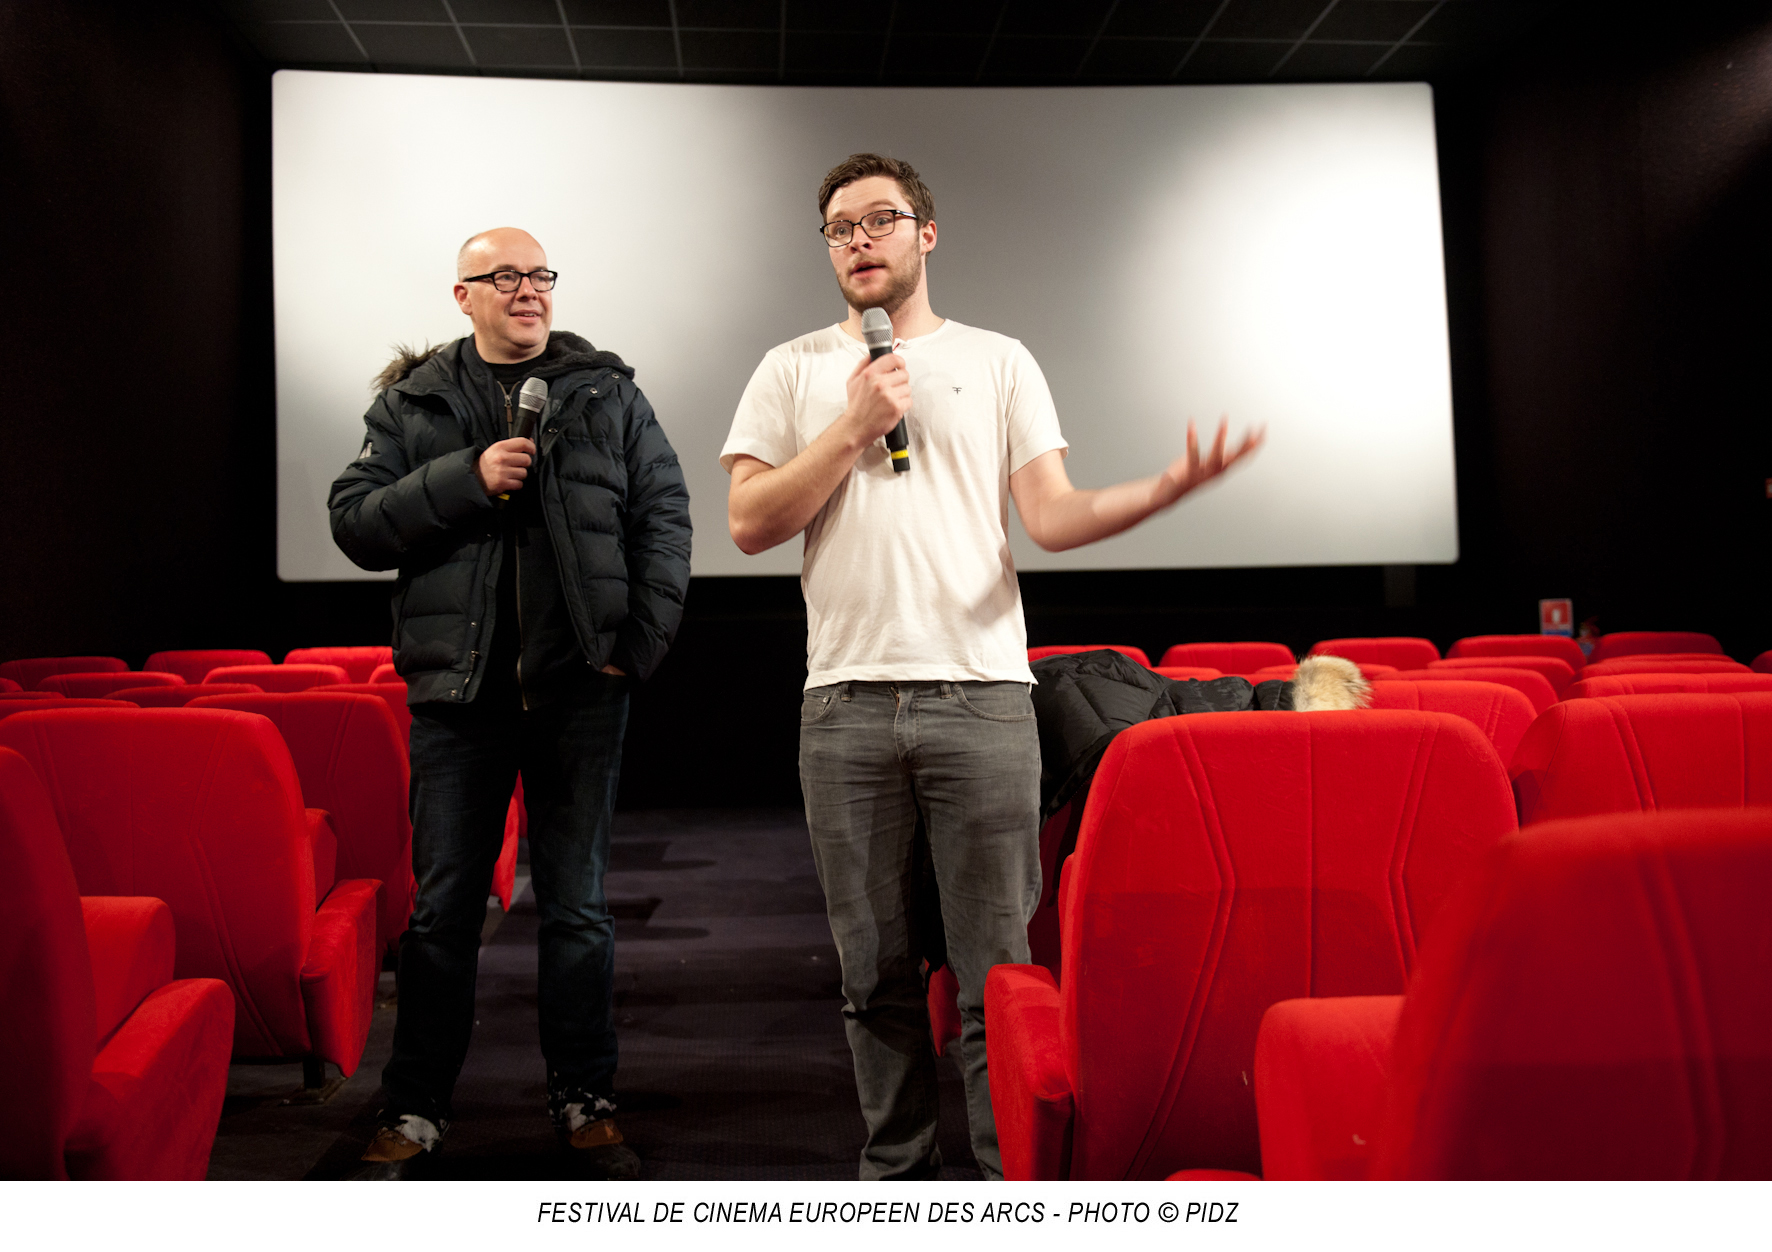 Arc 1800. Jack REYNOR, comédien et membre du jury répond aux questions des spectateurs à l'issue de la projection du film « Dollhouse ». - Photo : PIDZ